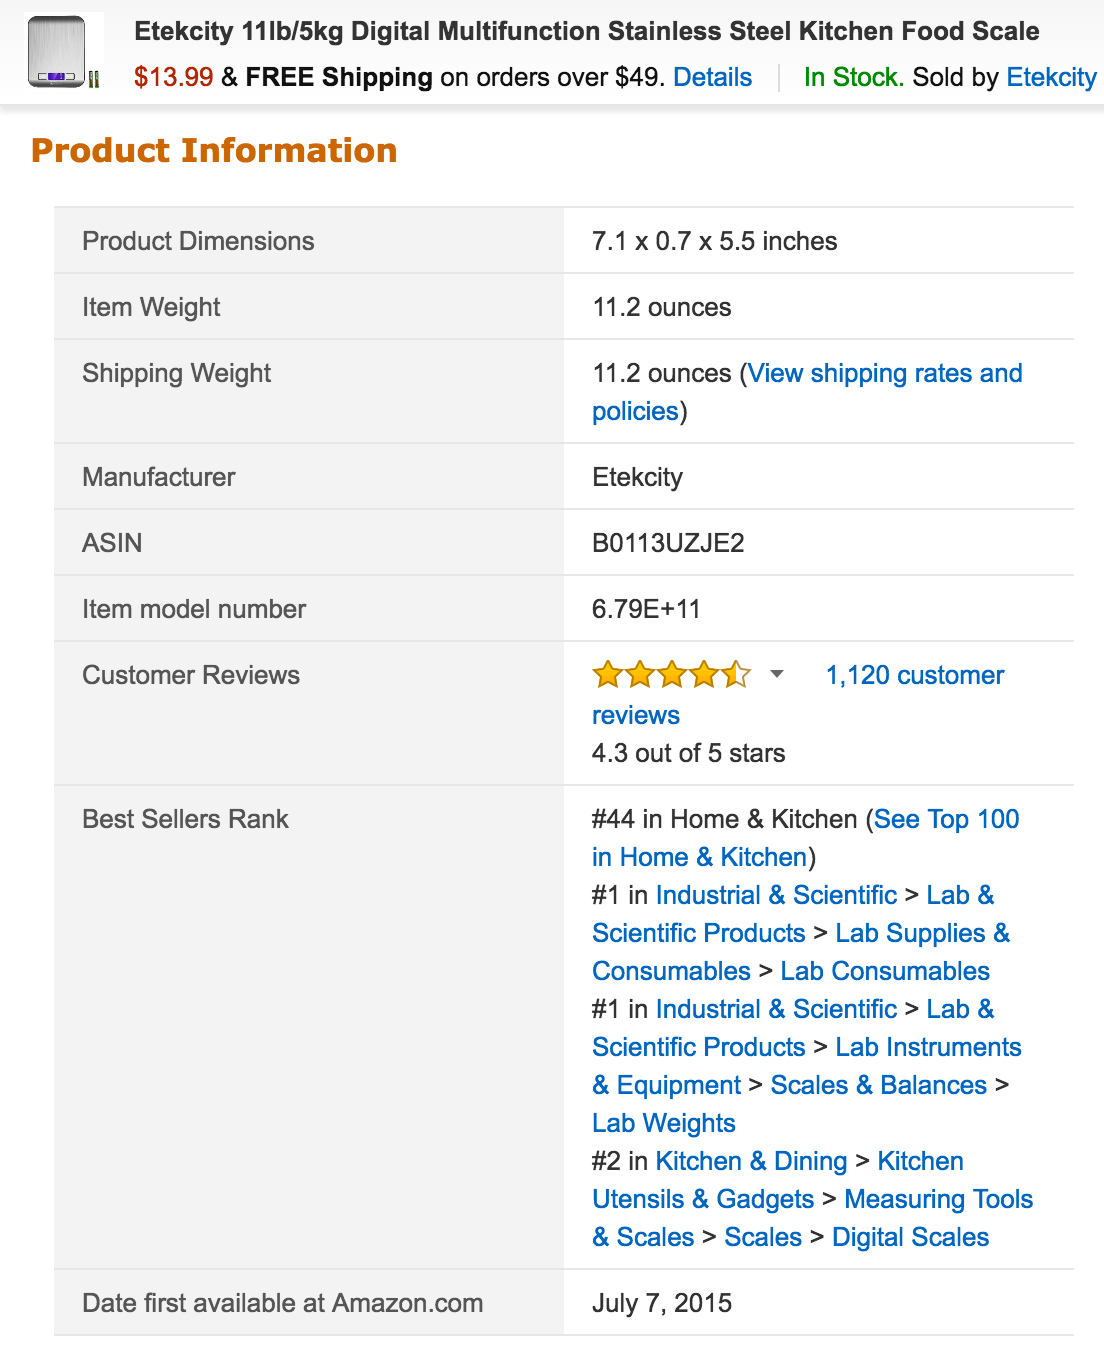 Amazon product page example